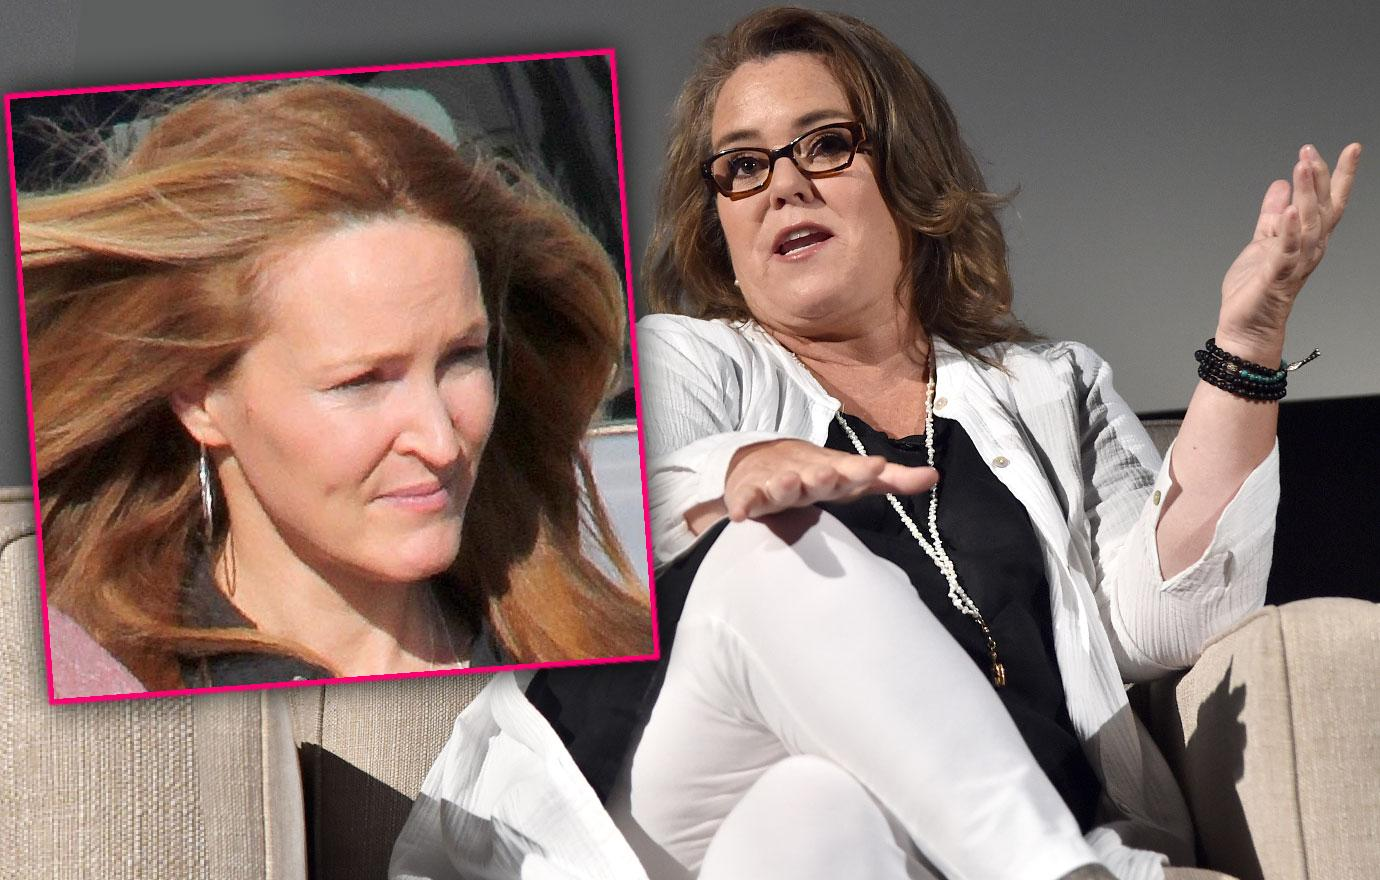 Rosie ODonnell Ex Wife Suicide Had Not Seen Their Daughter In Long Time